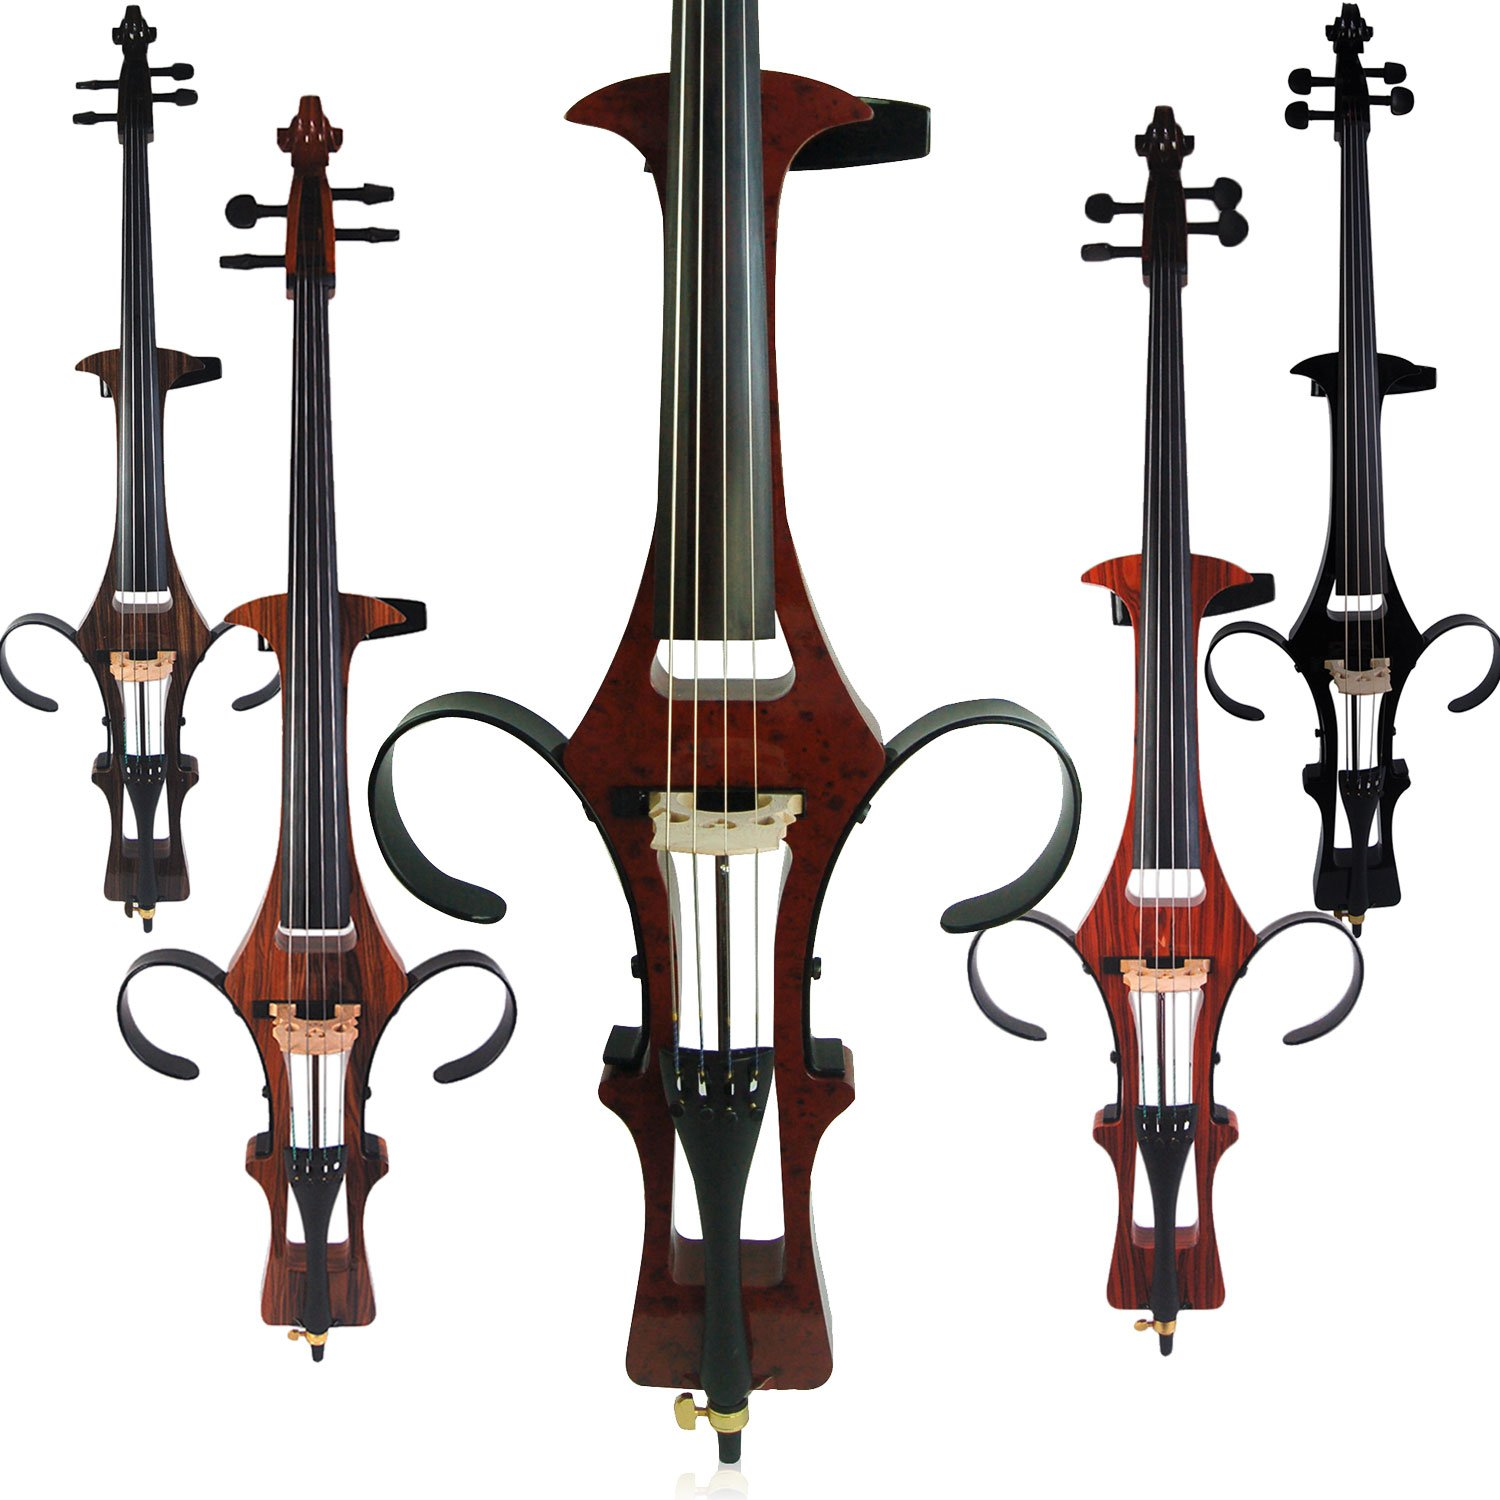 Aliyes Handmade Professional Solid Wood Electric Cello 4/4 Full Size Silent Electric Cello-Soul